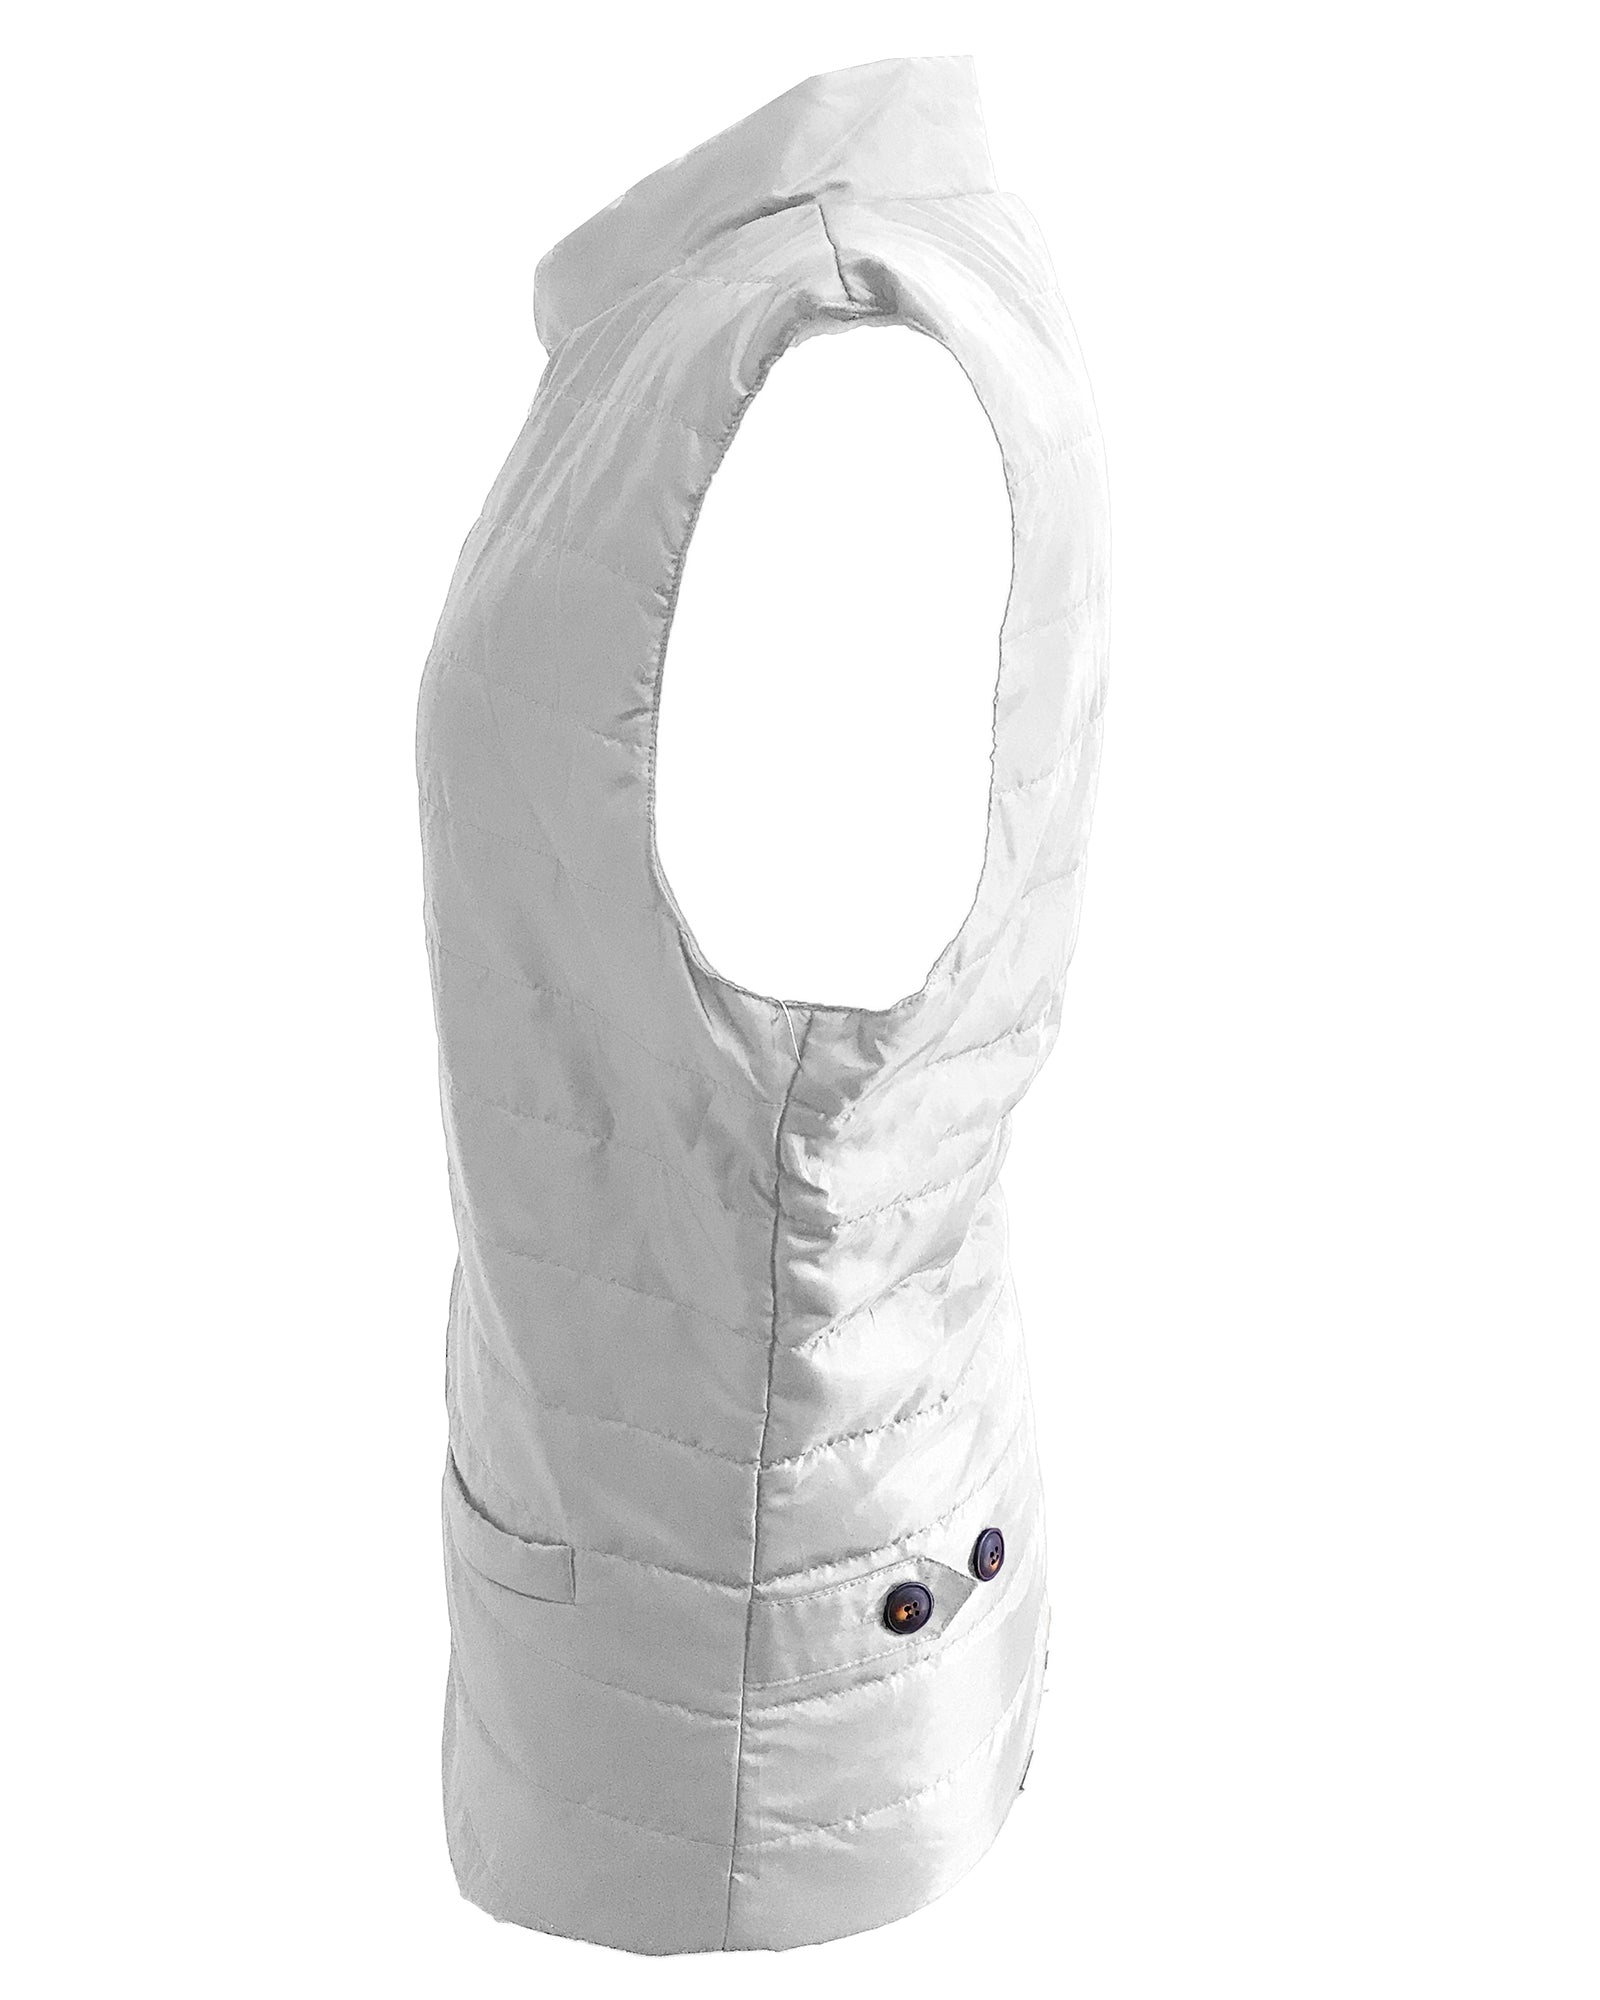 Quilted Multi-Pocket Water Resistant Zipped Bodywarmer Gilet - White